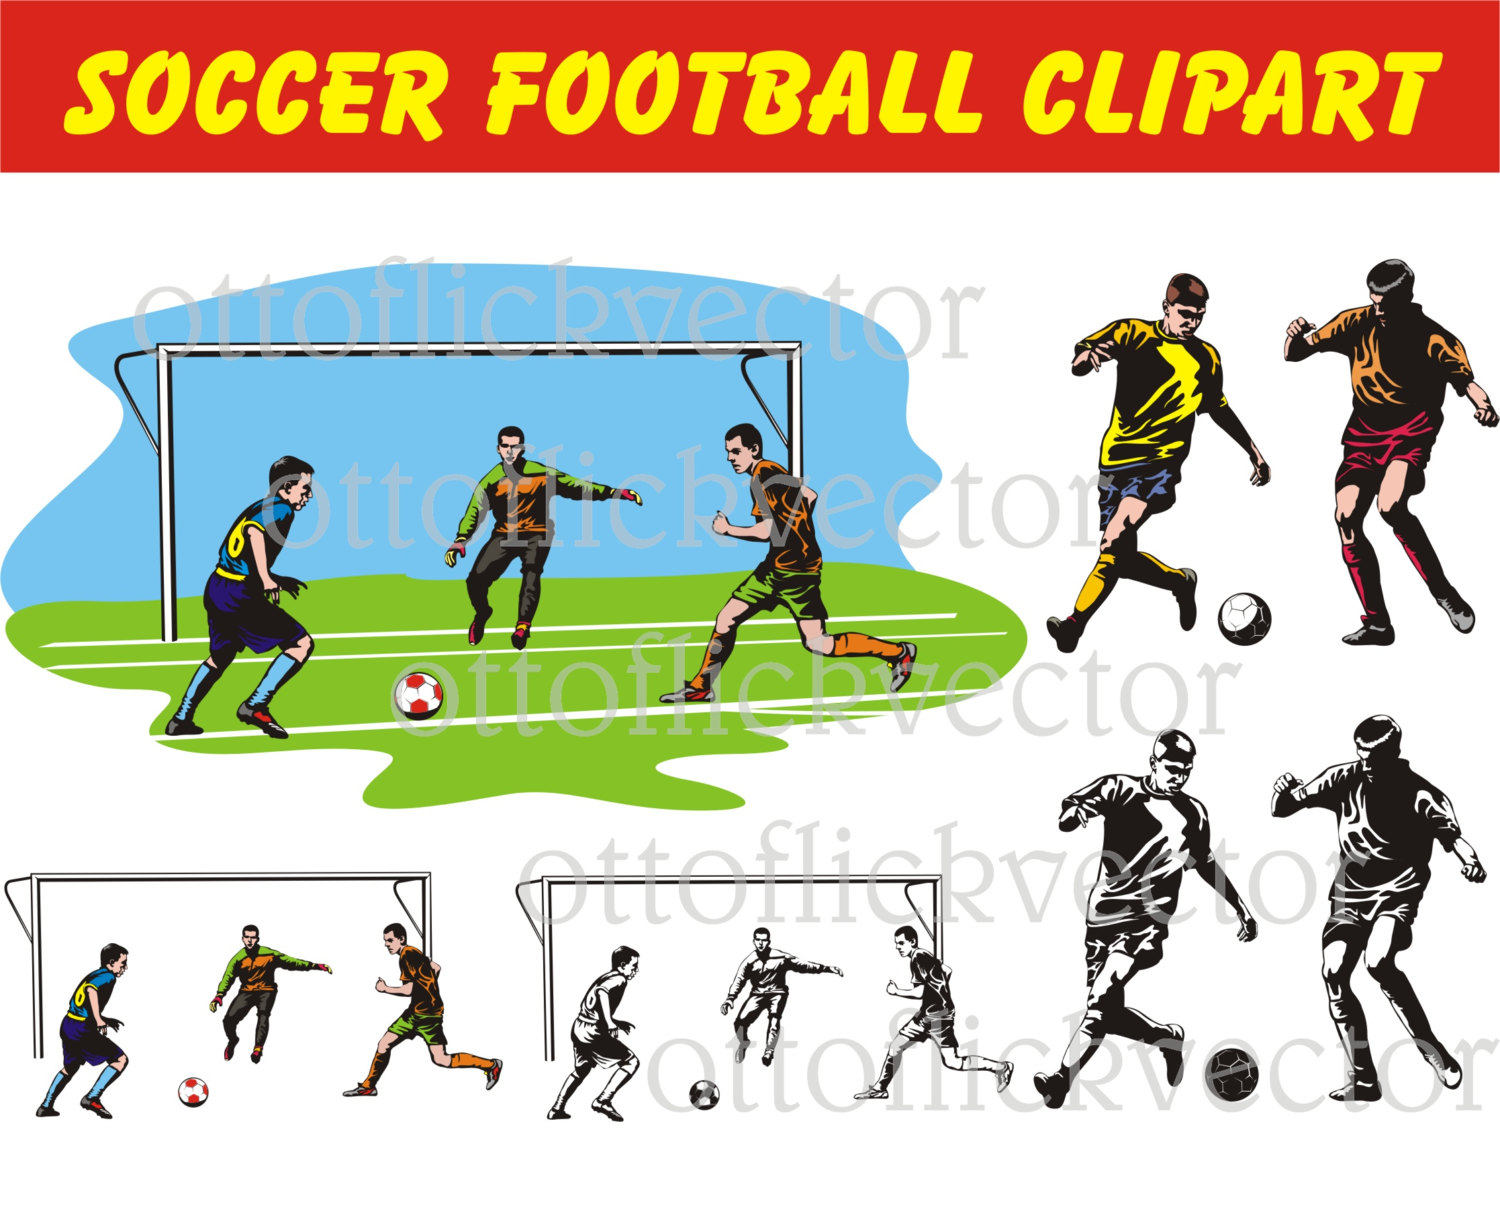 SOCCER FOOTBALL Vector CLIPART, eps, ai, cdr, png, jpg files.